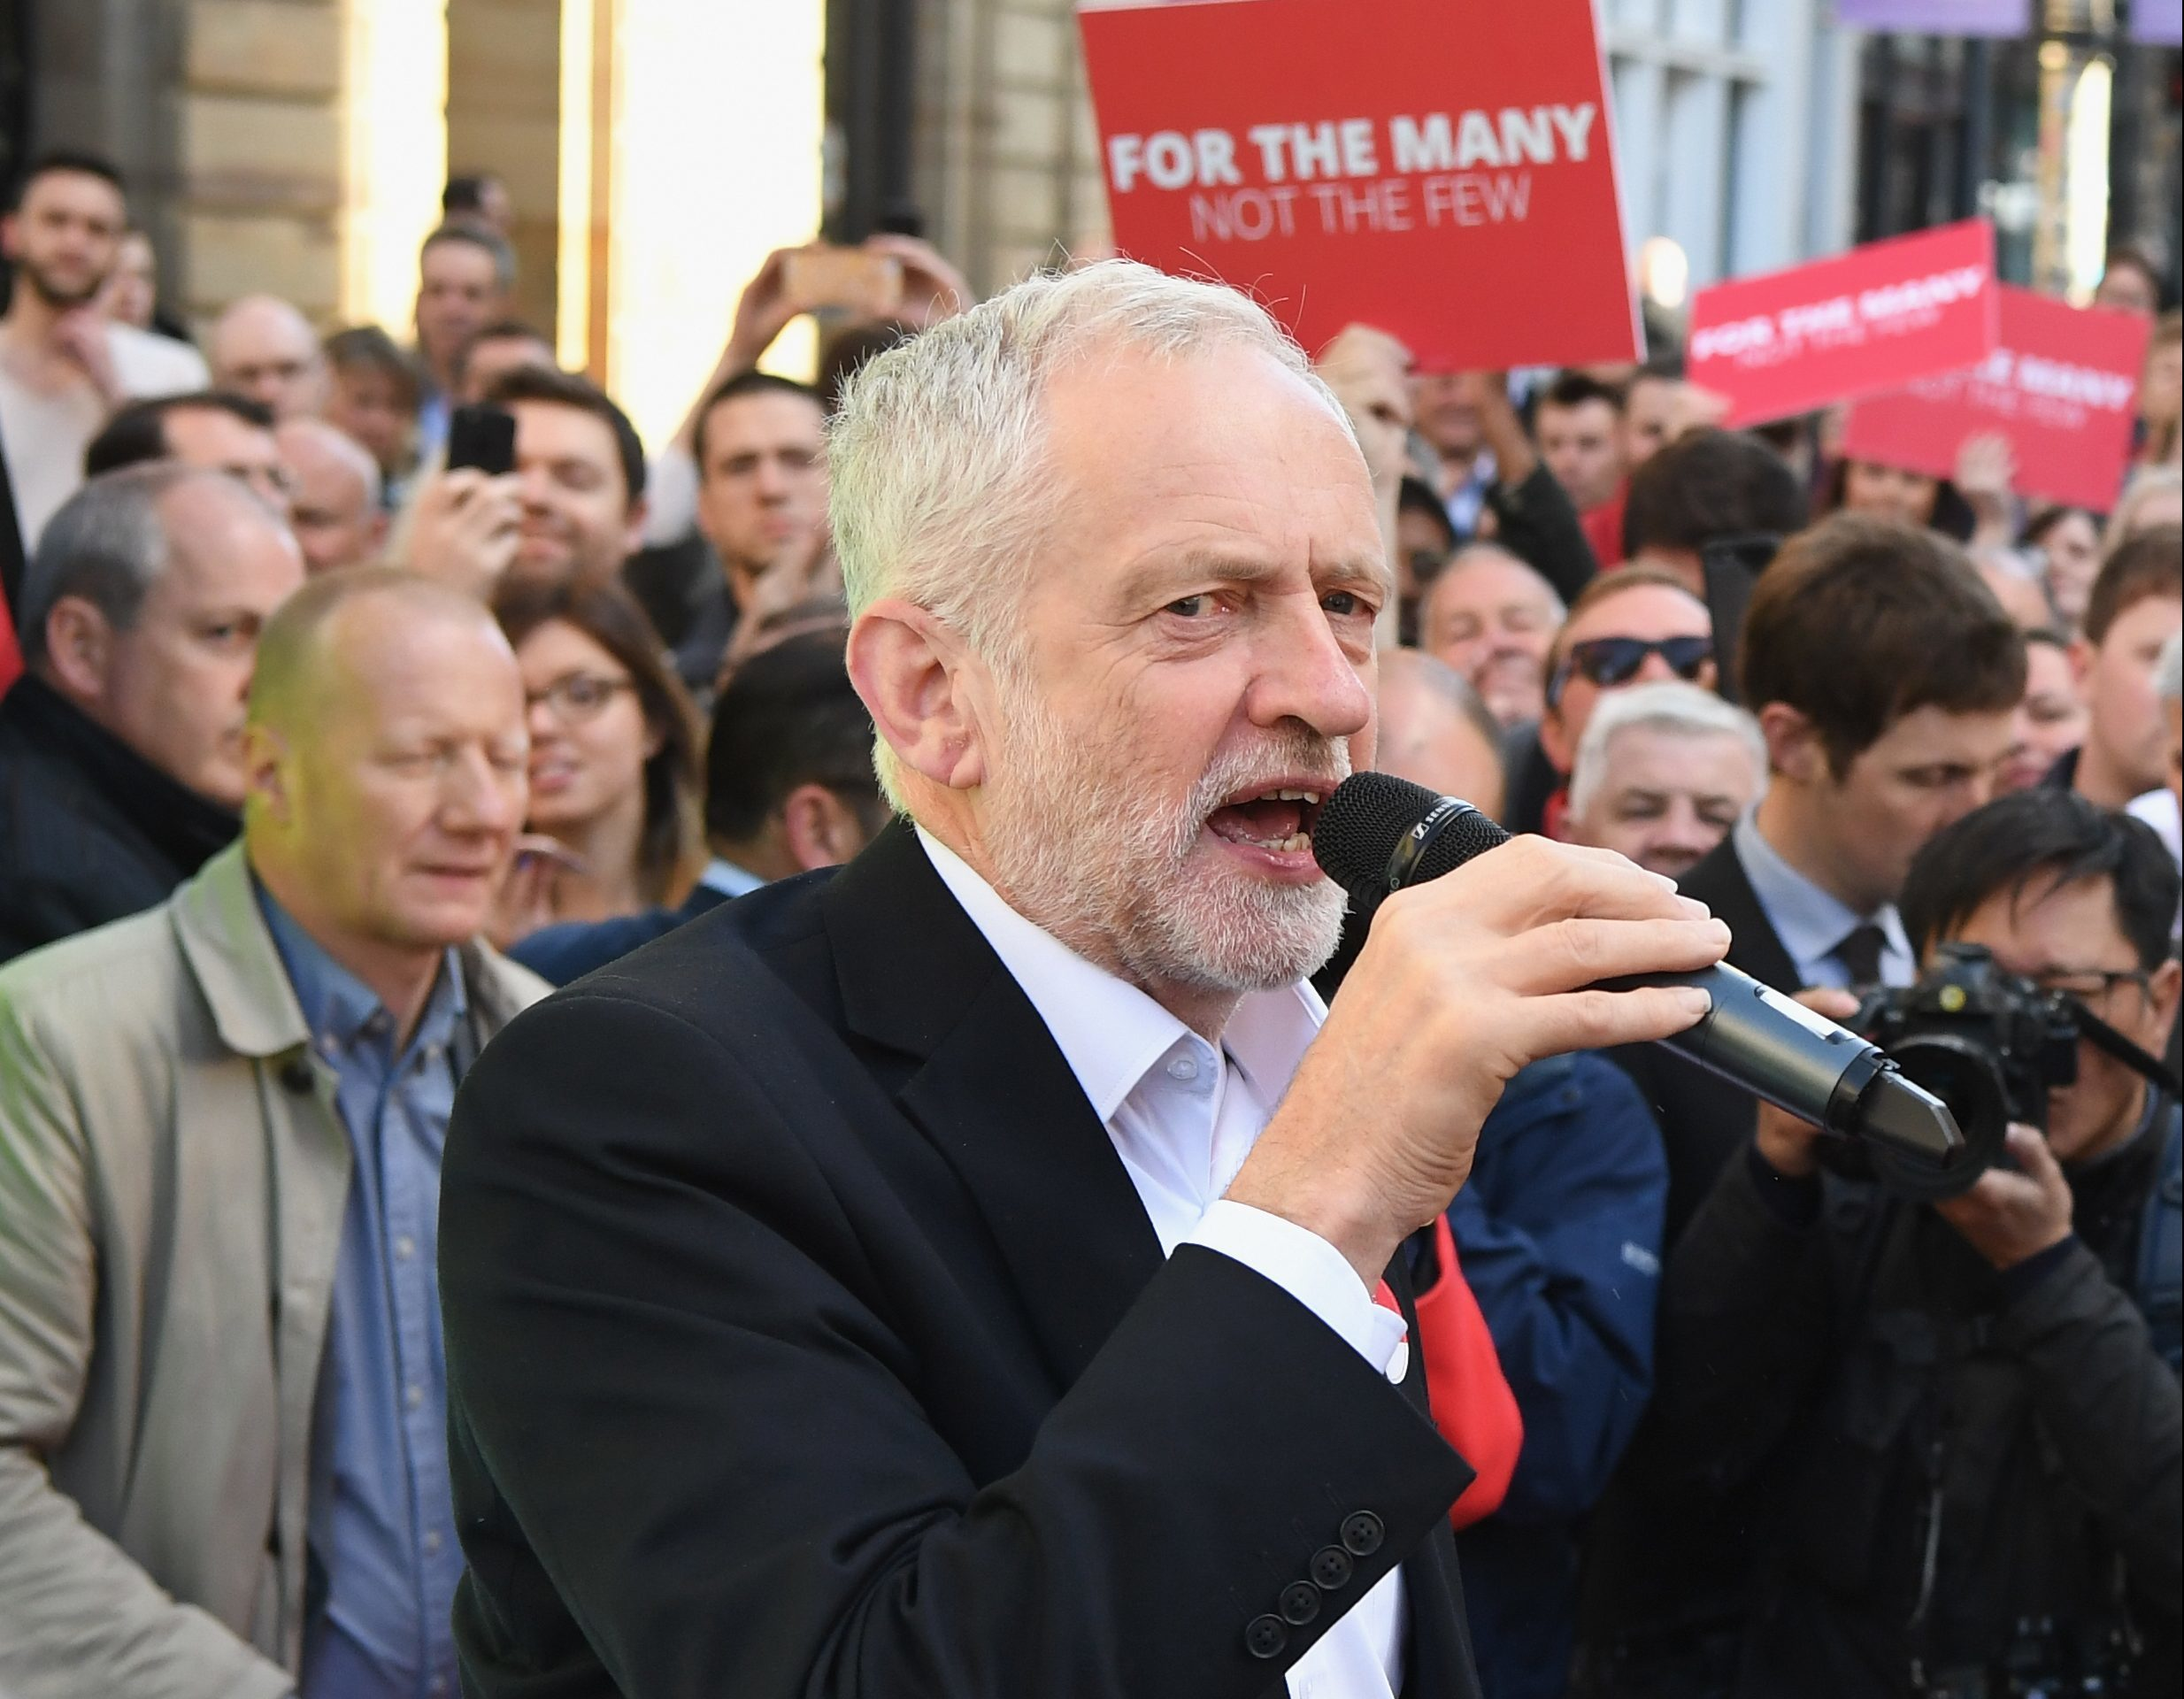 Jeremy Corbyn, Leader of the Labour Party, speaks to activists during a campaign rally on Buchanan Street Glasgow. (Jeff J Mitchell/Getty Images)